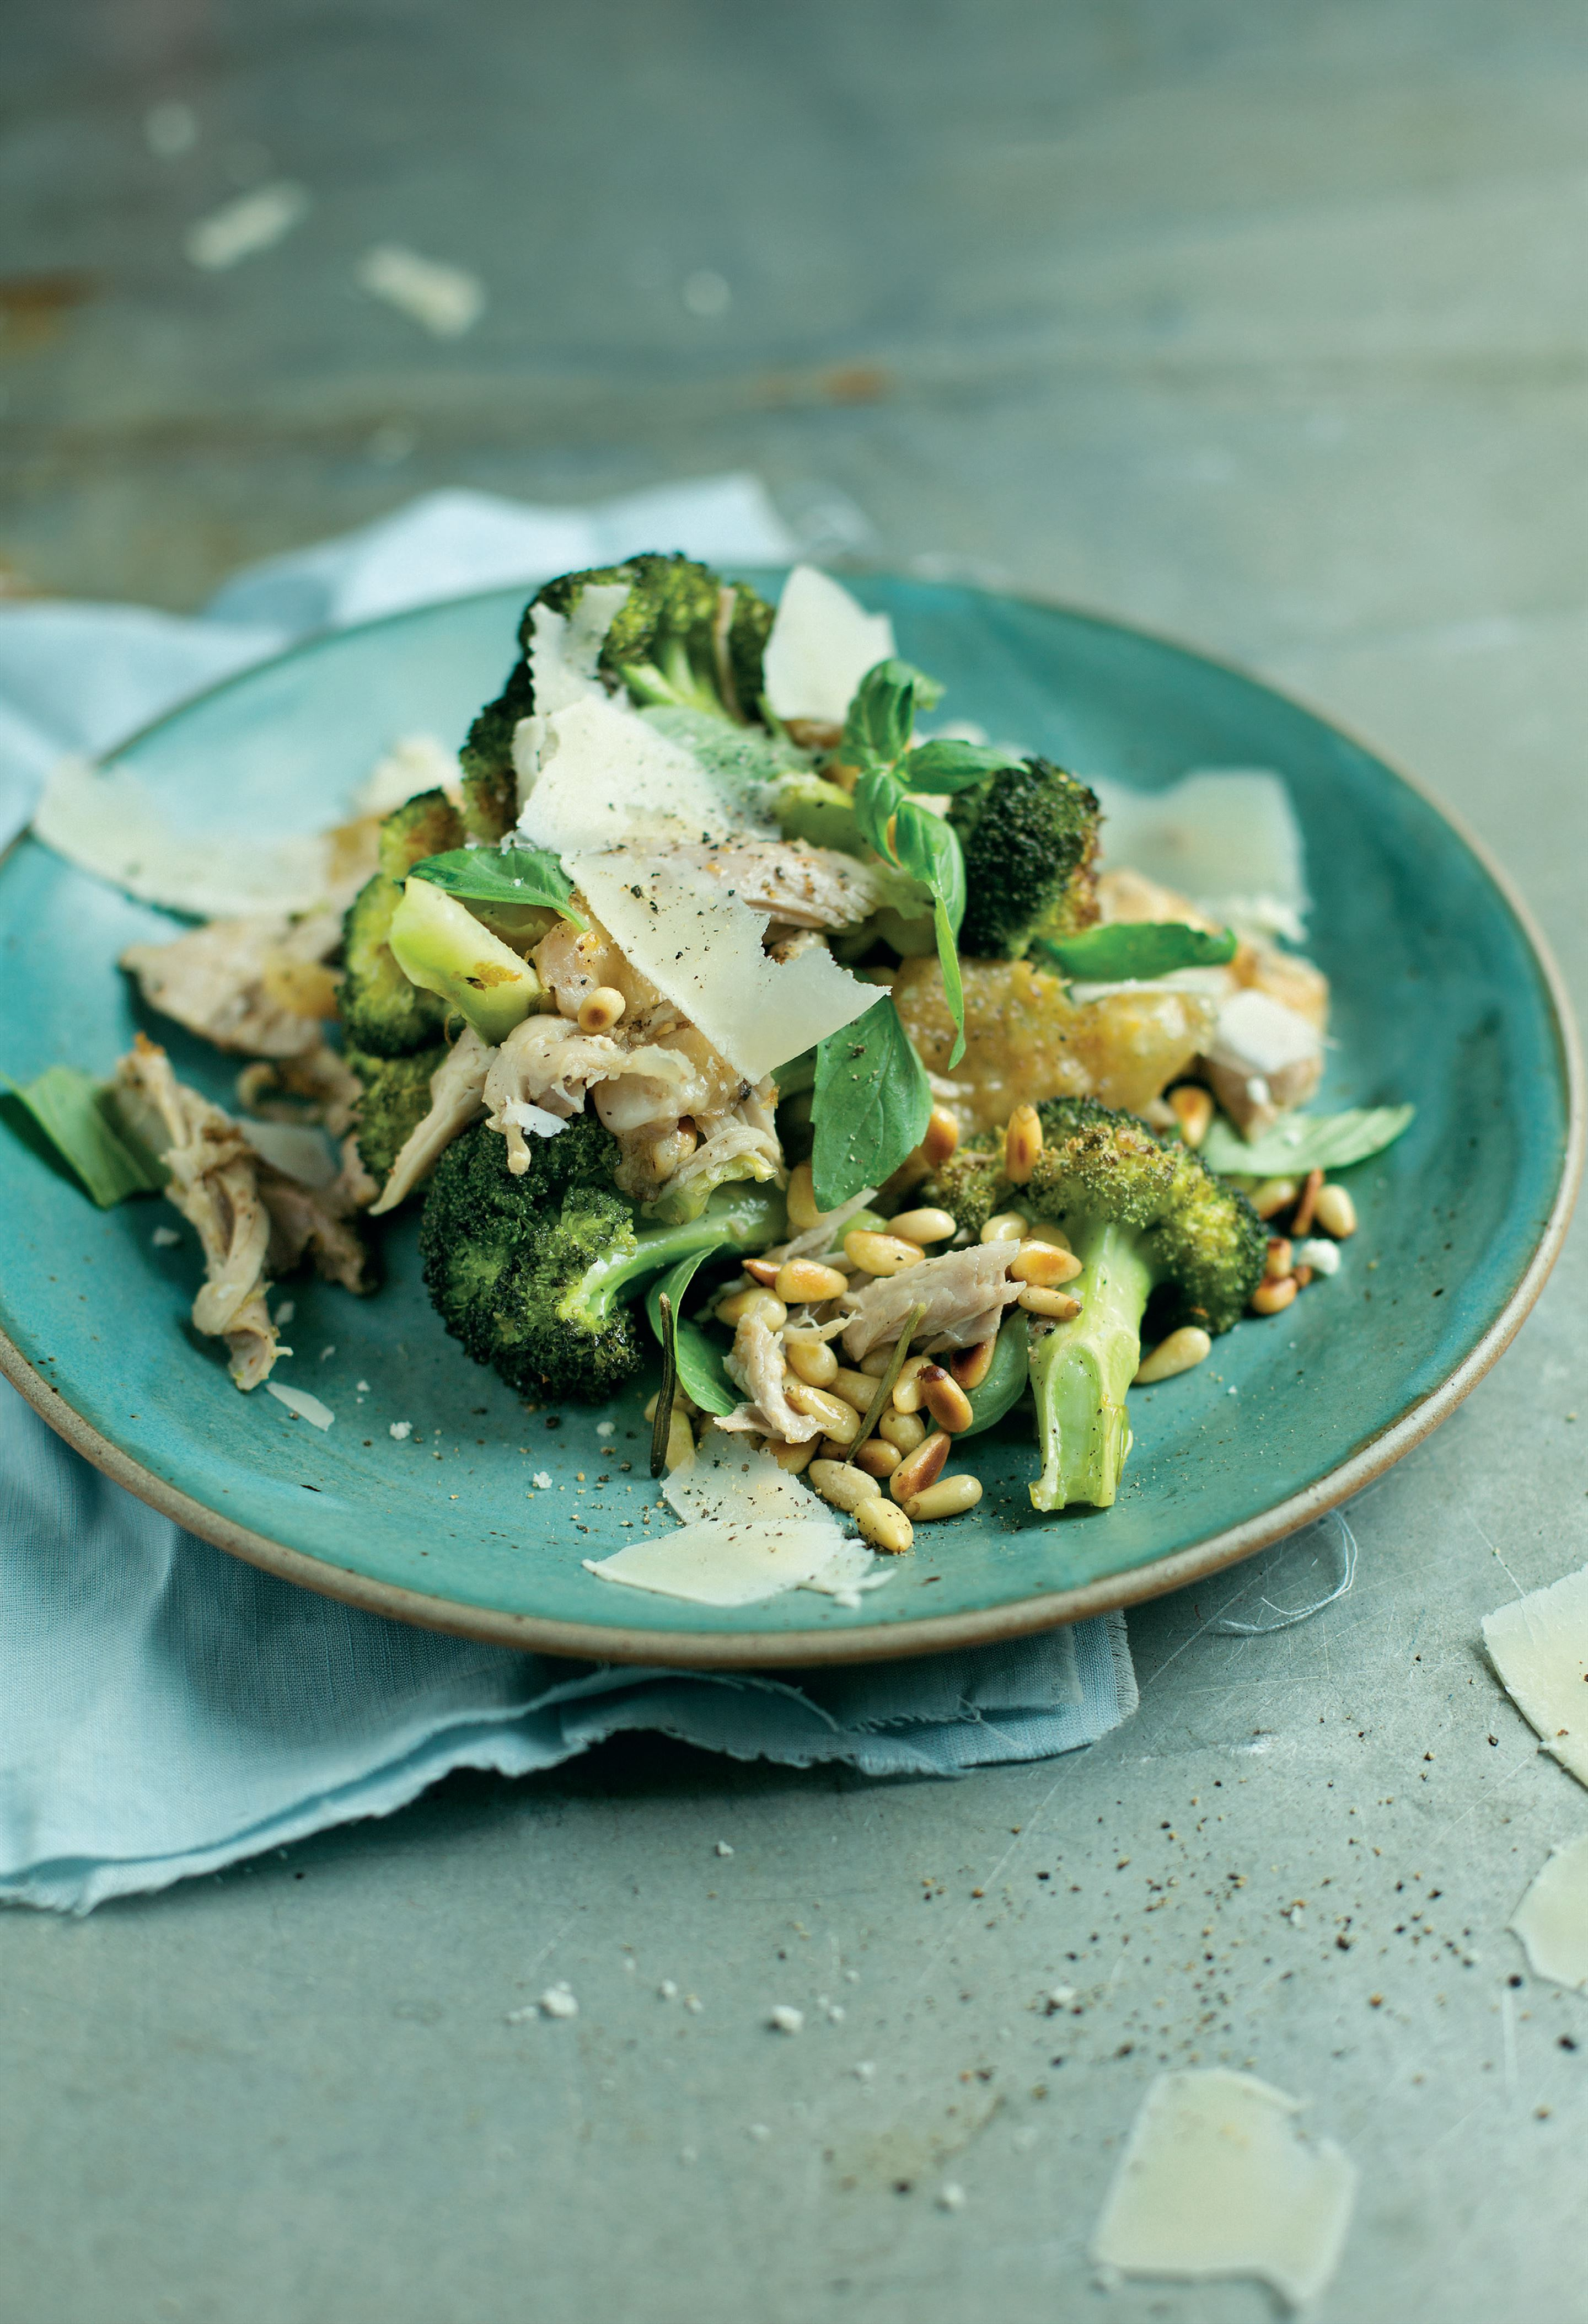 Roast broccoli with shredded chicken, pine nuts and basil